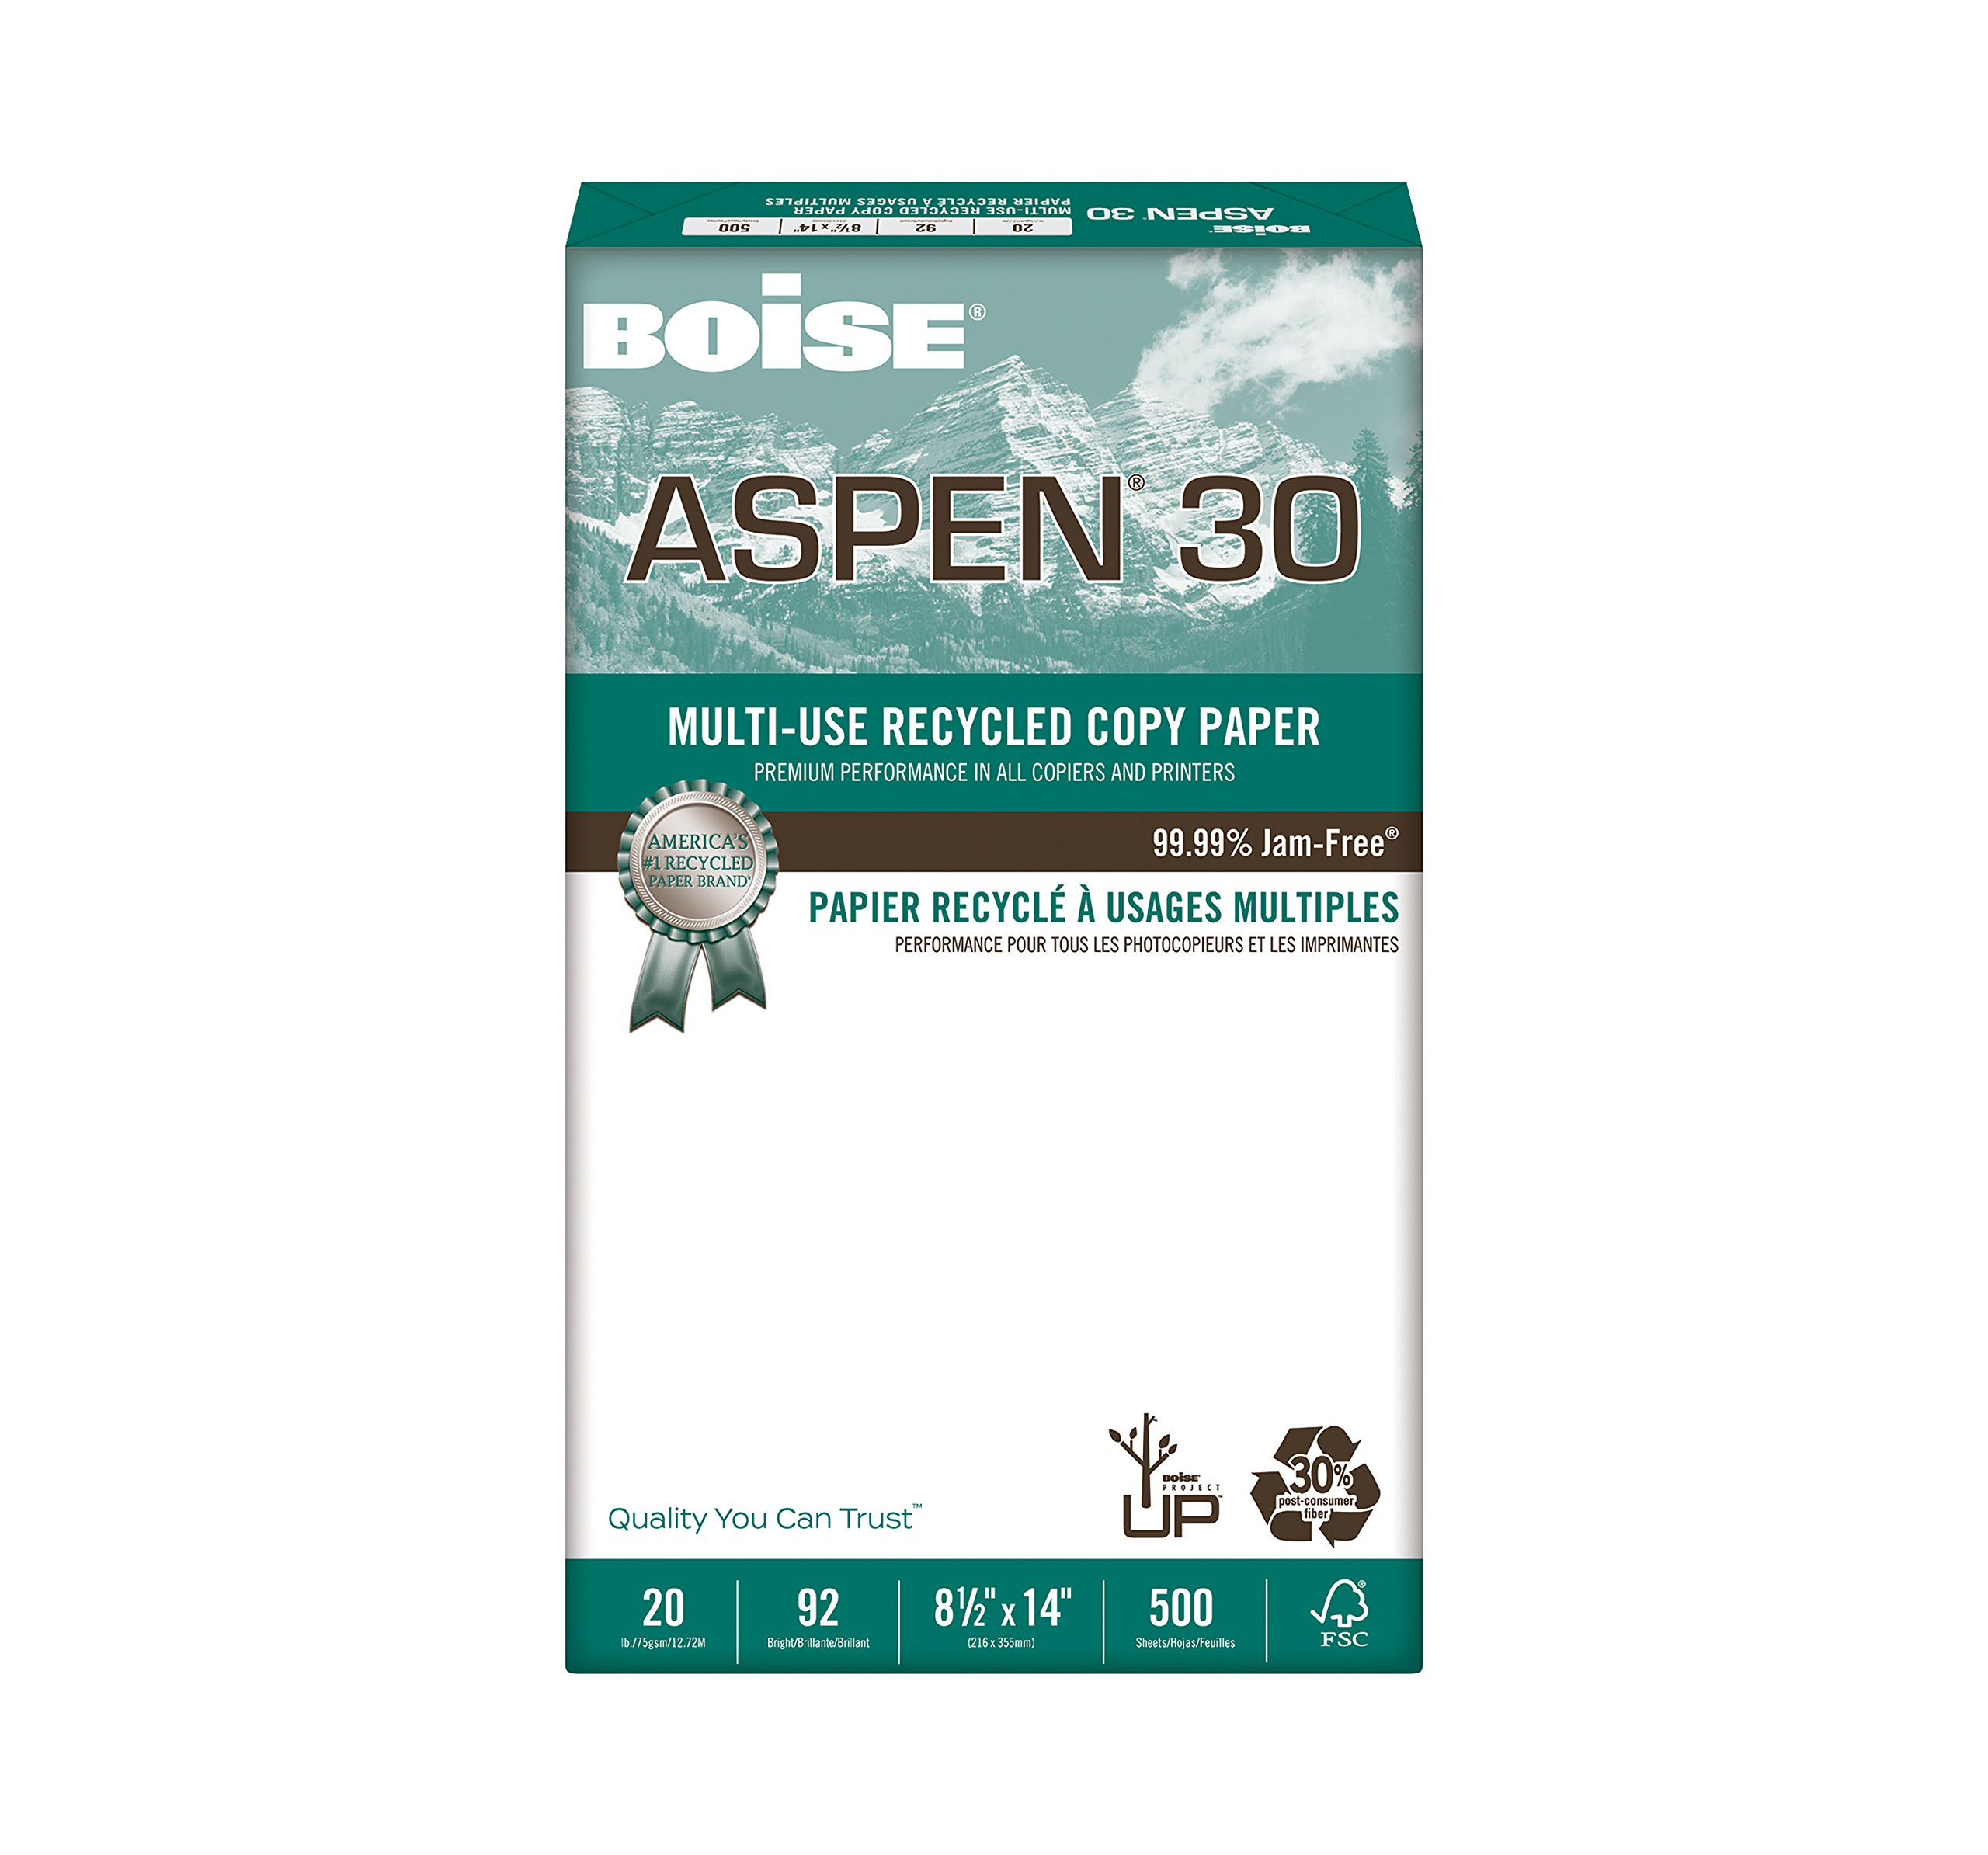 BOISE ASPEN 30% Recycled Multi-Use Copy Paper, 8.5'' x 14'', Legal, 92 Bright, 20 lb, 10 Ream Carton (5,000 Sheets) by Boise Paper (Image #3)